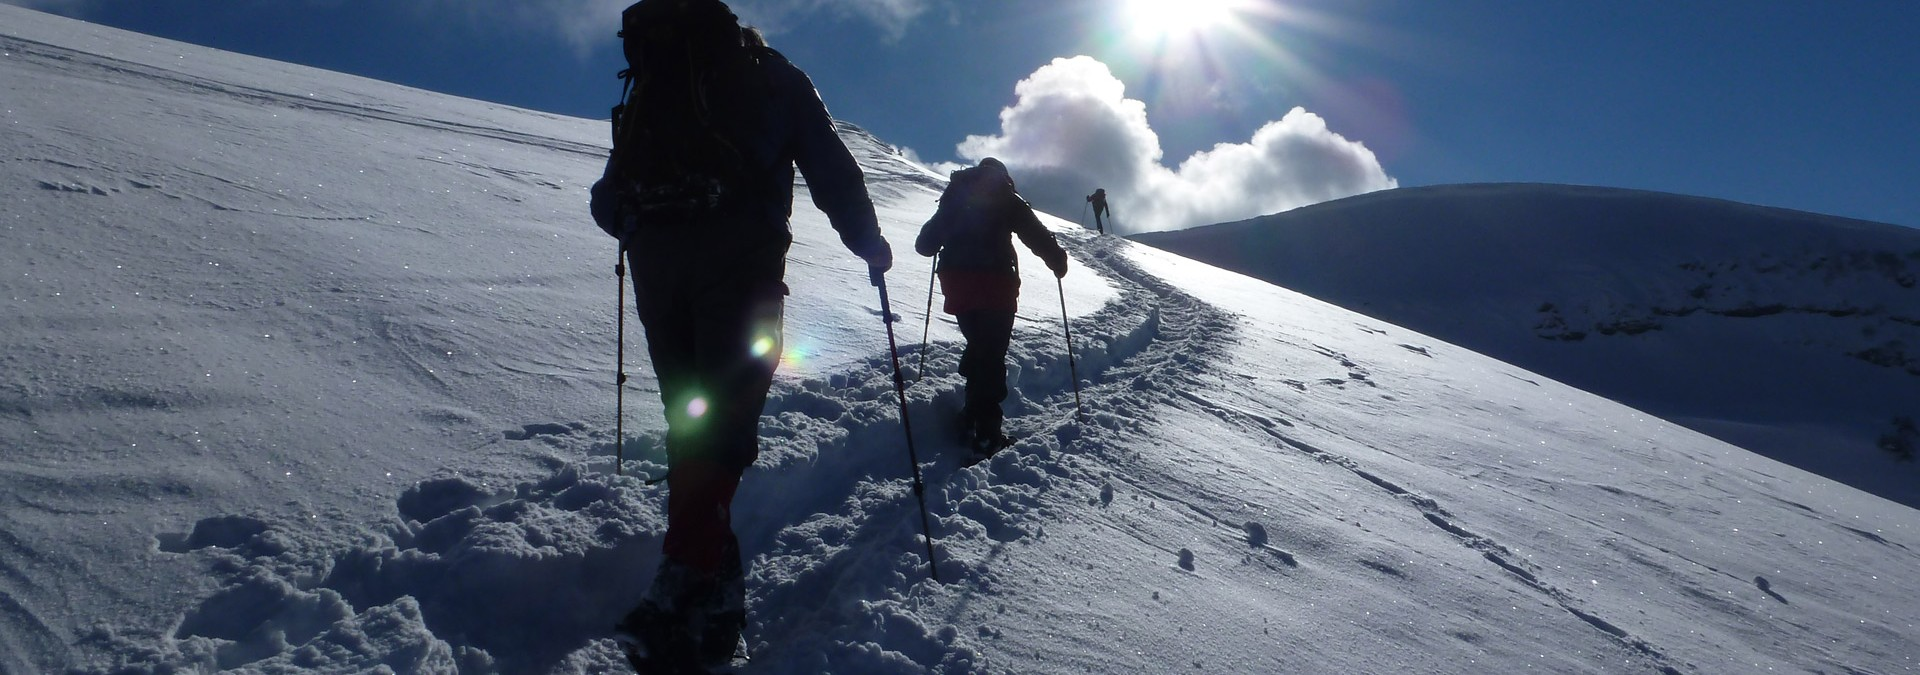 Tailormade snowshoeing